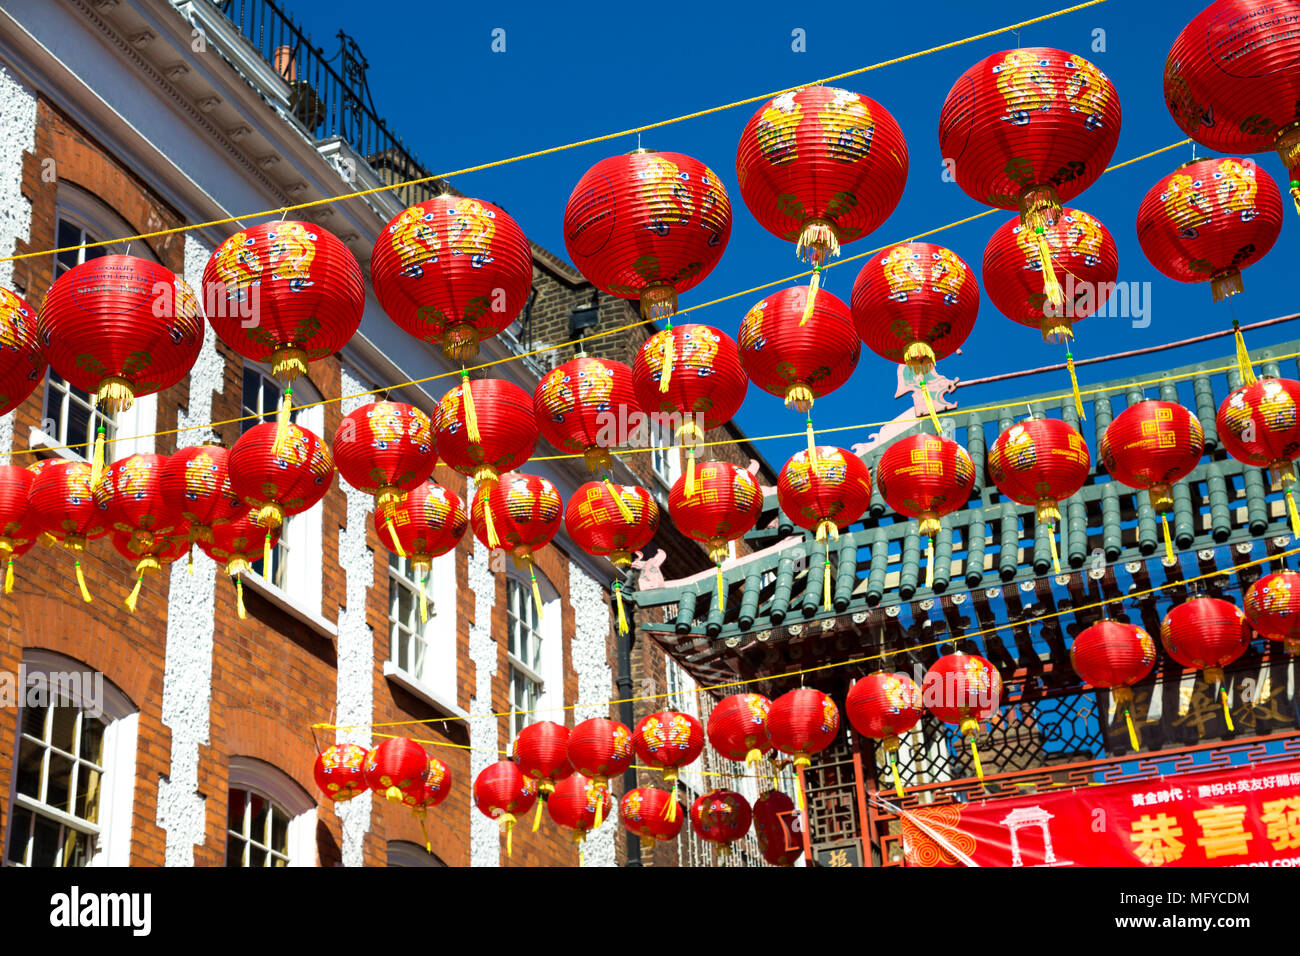 Red and yellow Chinese lanterns hanging above a street in China Town, London, UK - Stock Image